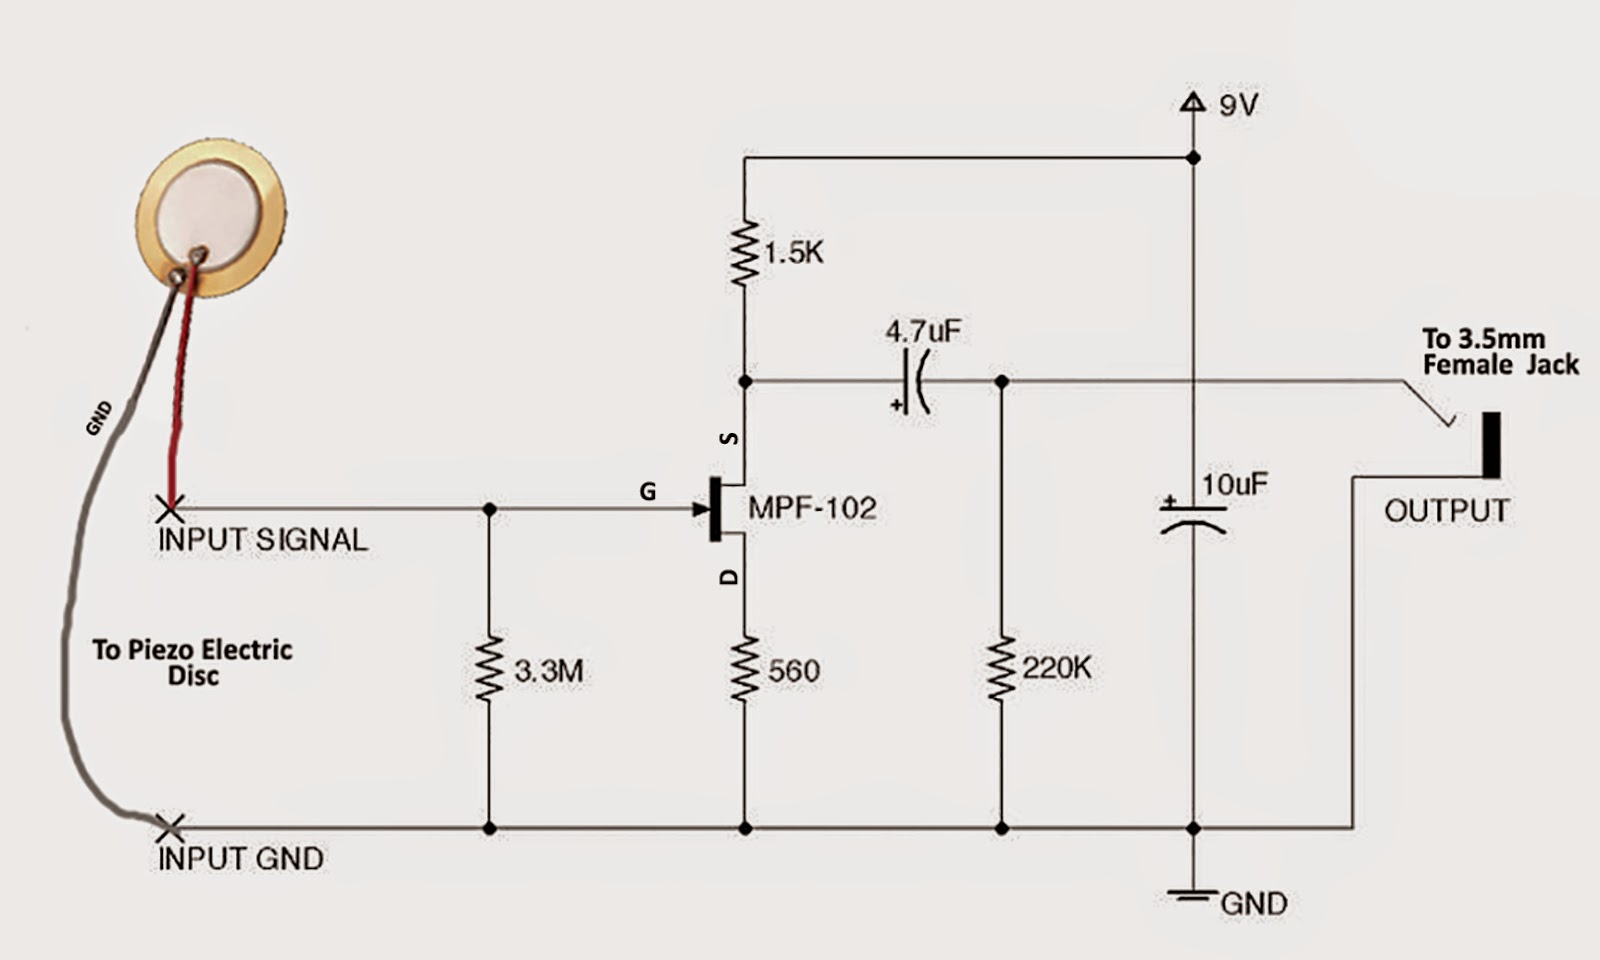 hight resolution of 3 5mm stereo to xlr diagram wiring schematic wiring diagram wrg 0704 3 5mm stereo